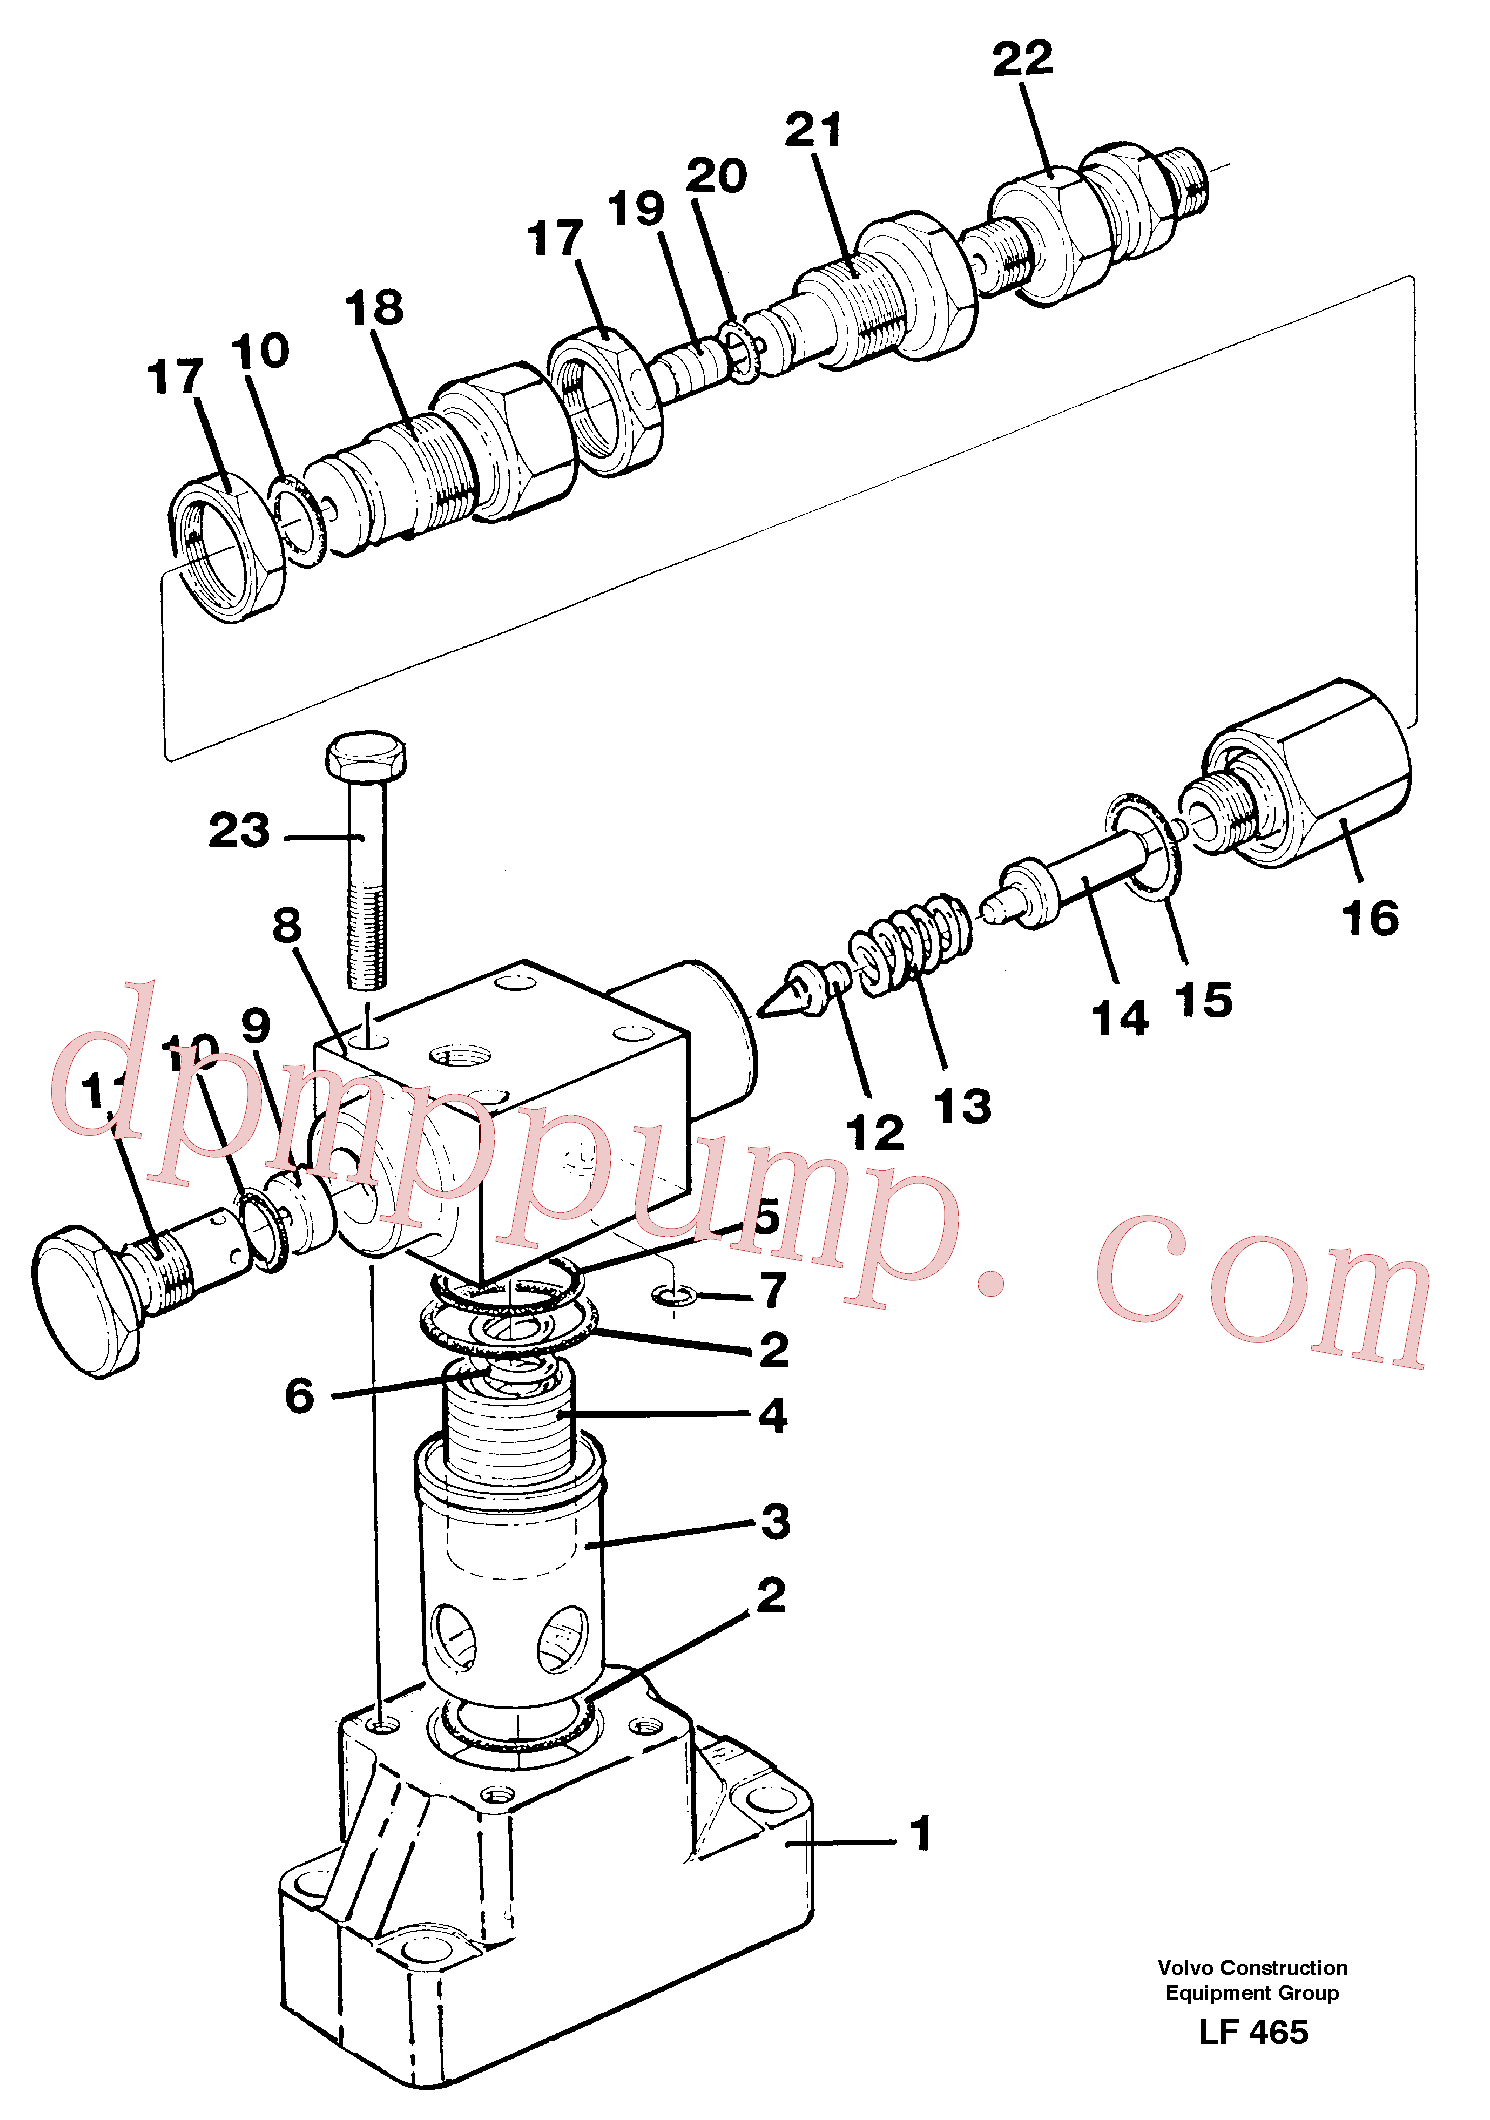 VOE14241443 for Volvo Pressure limiting valve(LF465 assembly)